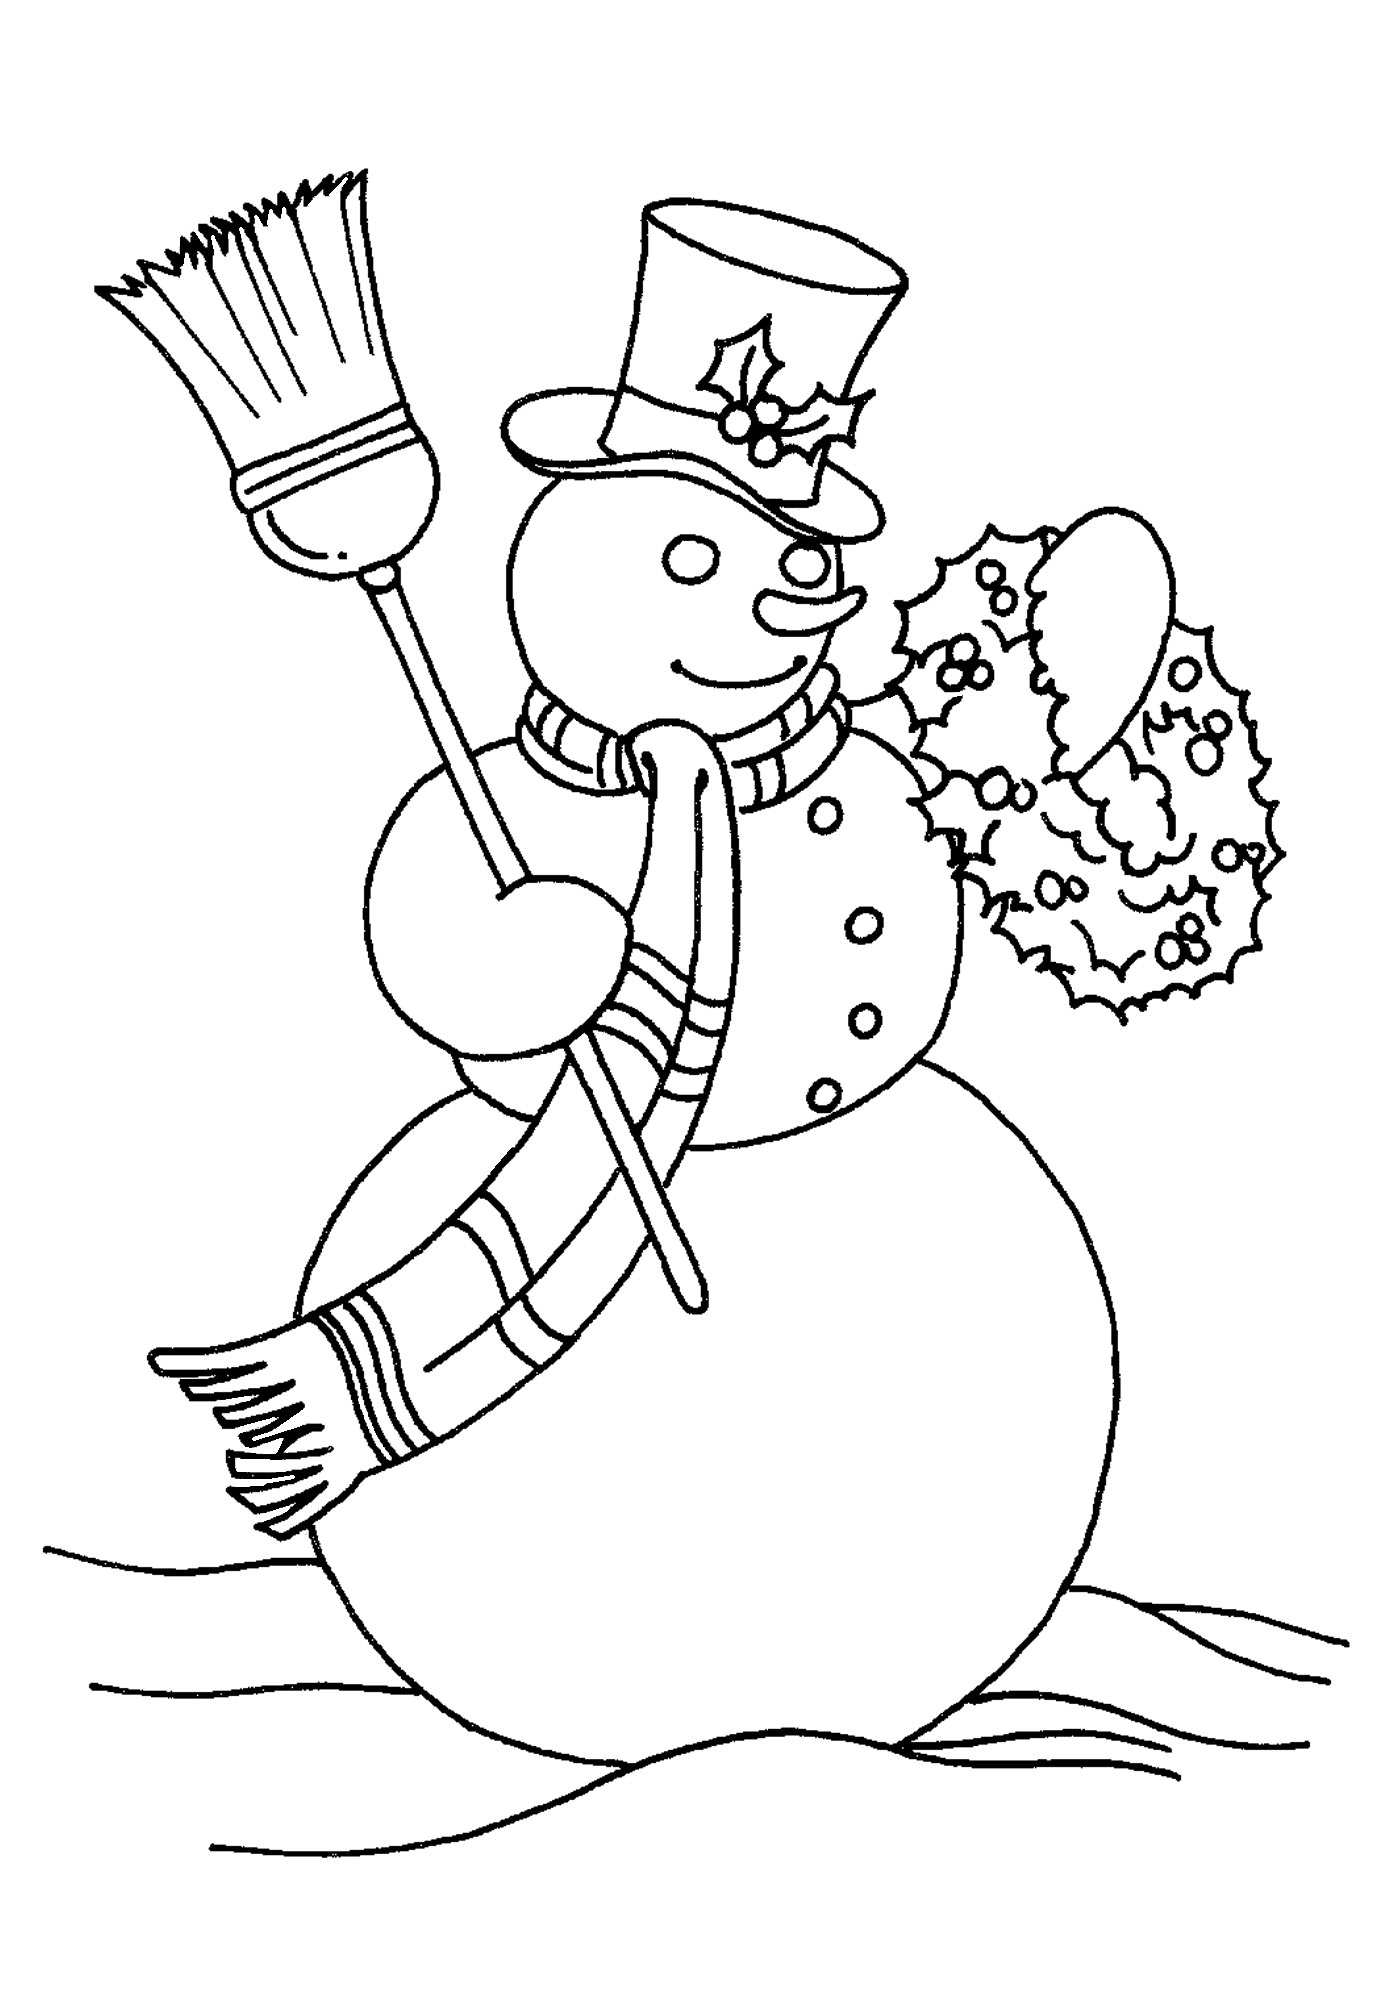 christmas coloring pages frosty the snowman - snowman coloring pages 360coloringpages